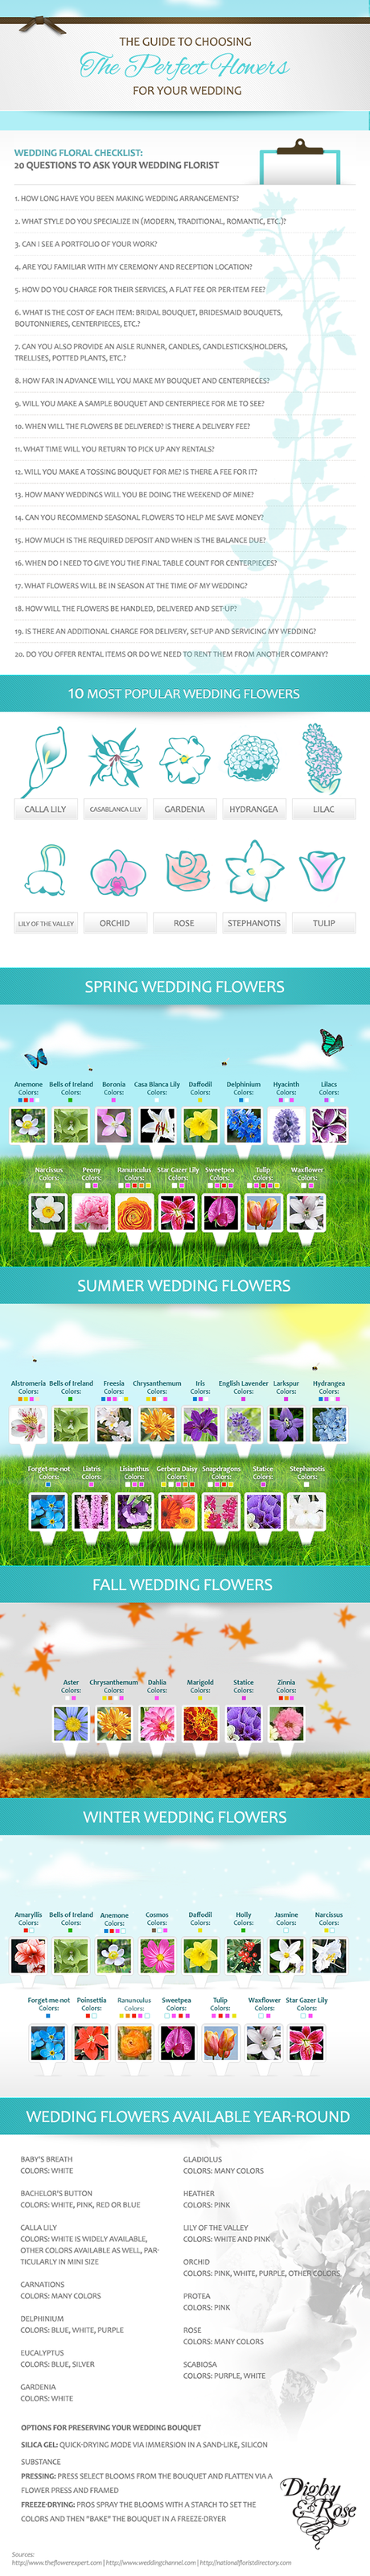 guide-wedding-flowers-lp